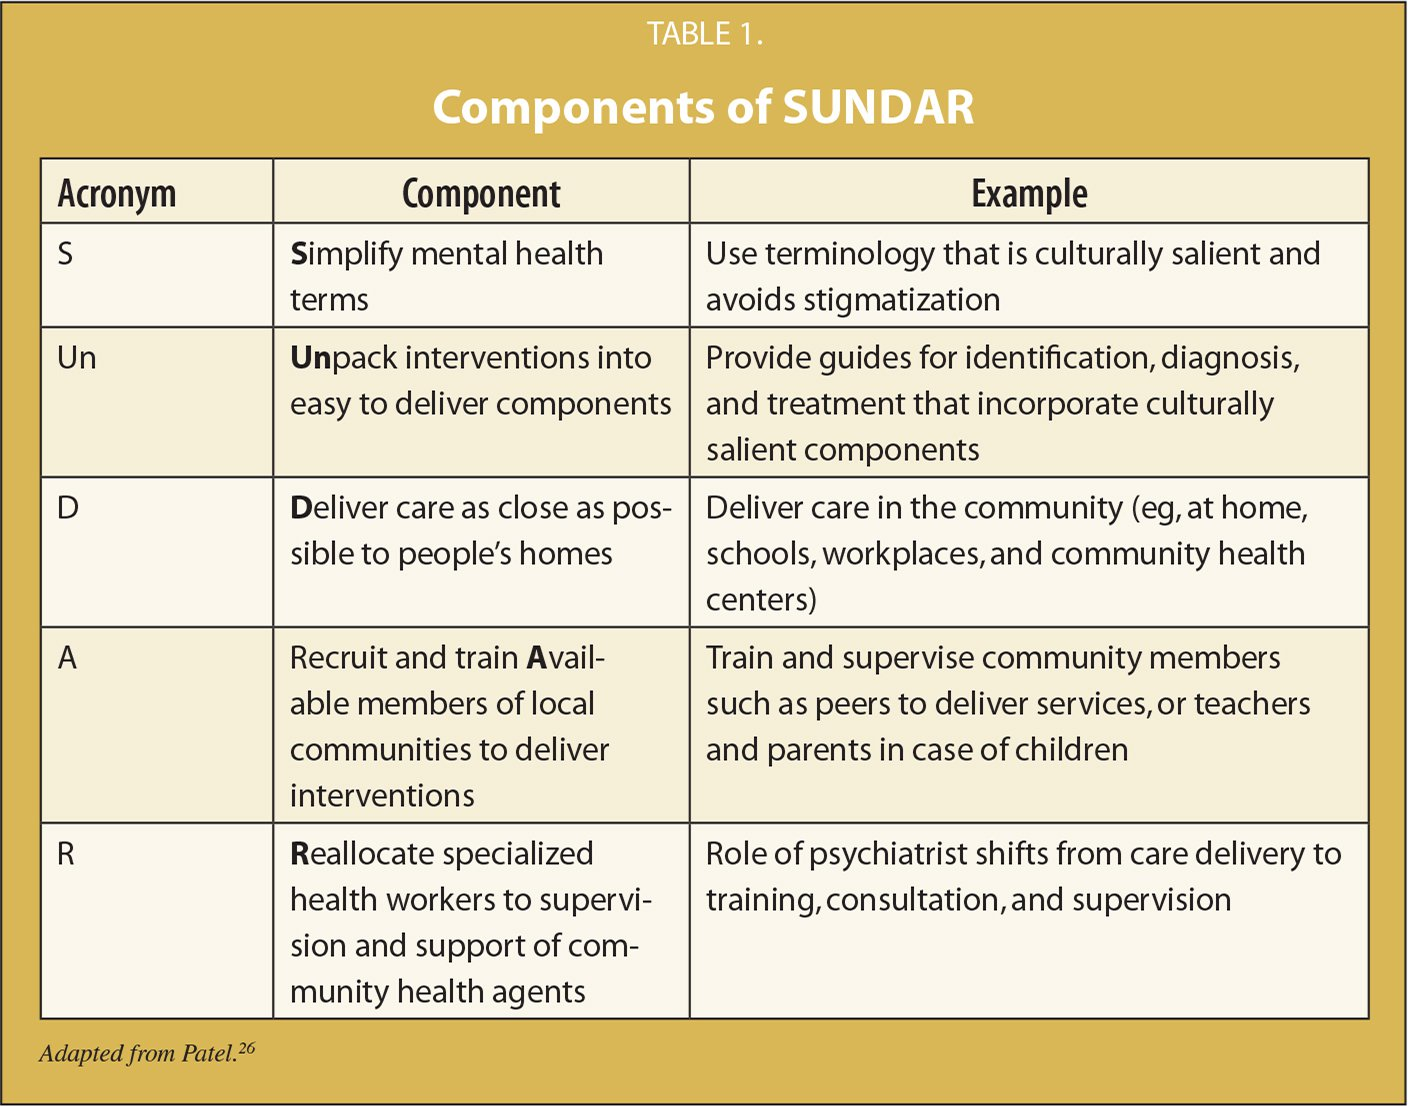 Components of SUNDAR